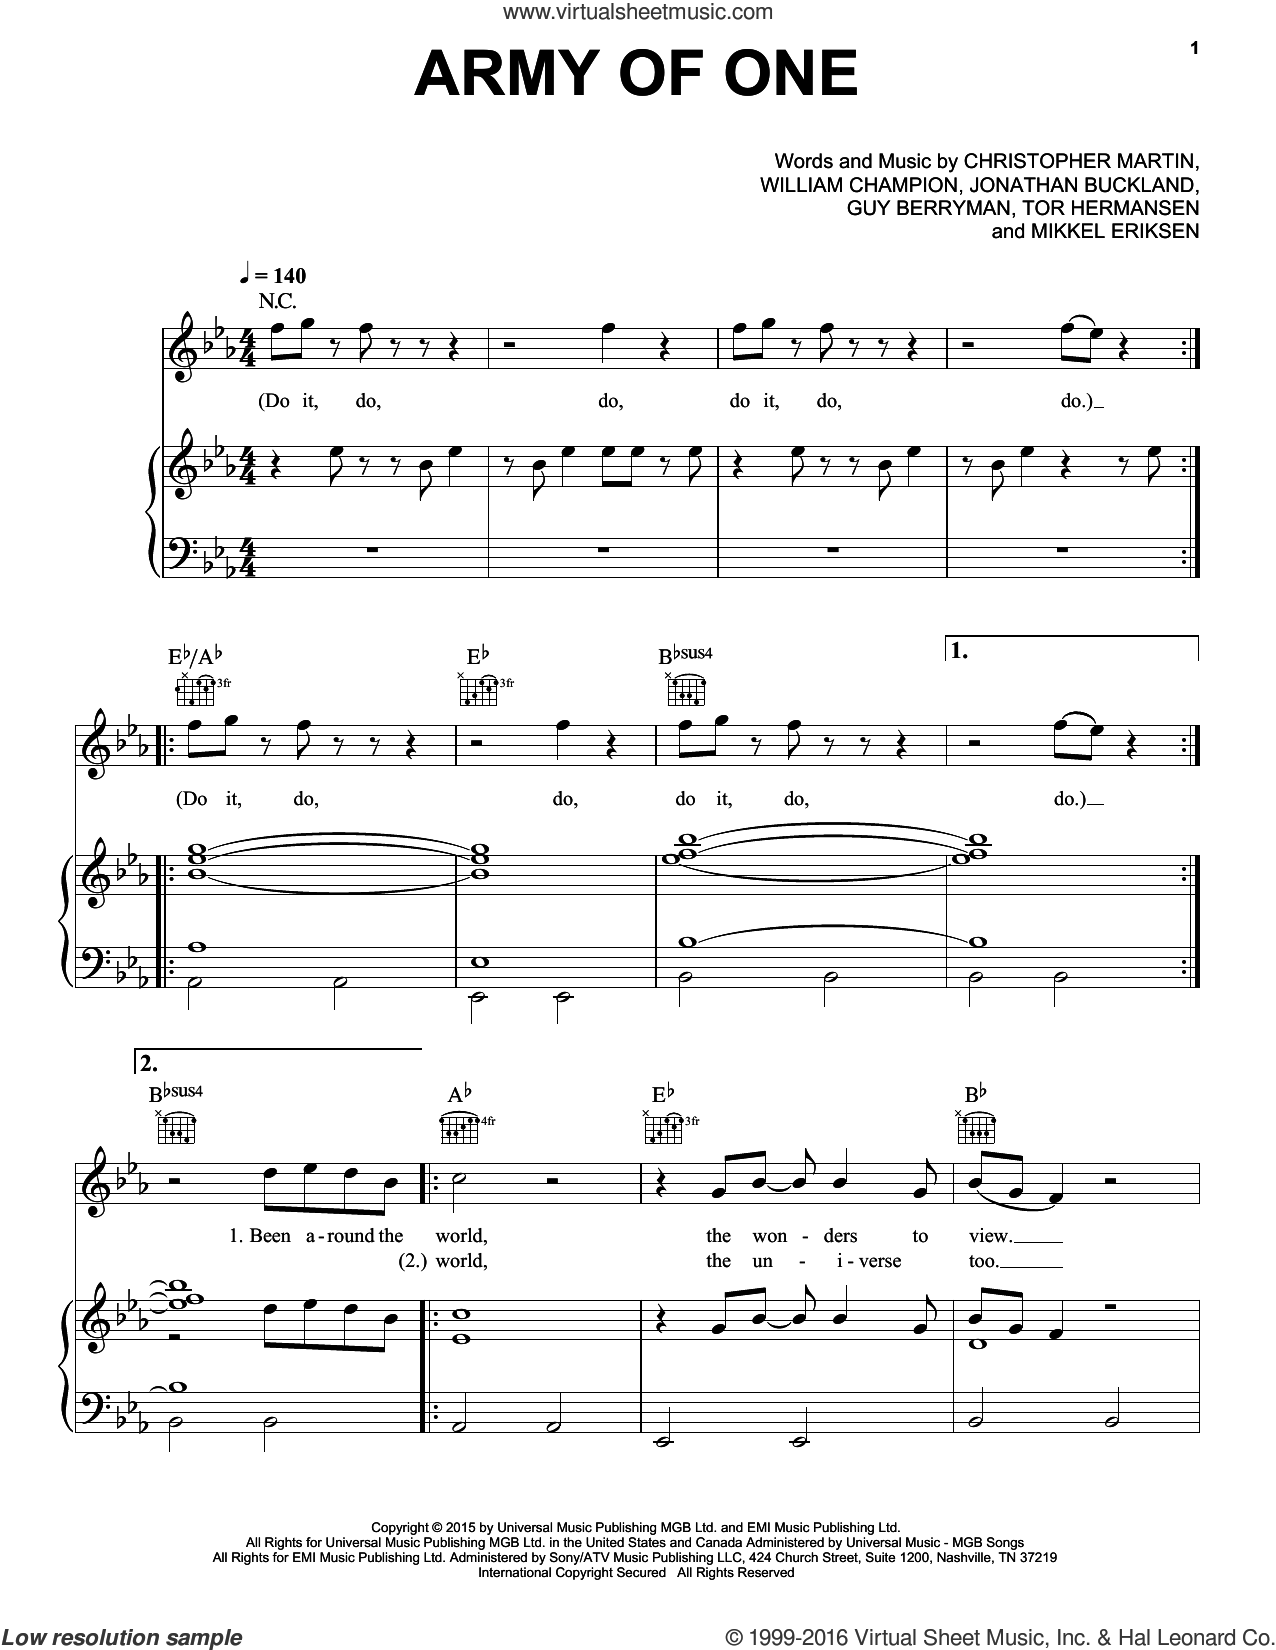 Army Of One sheet music for voice, piano or guitar by William Champion